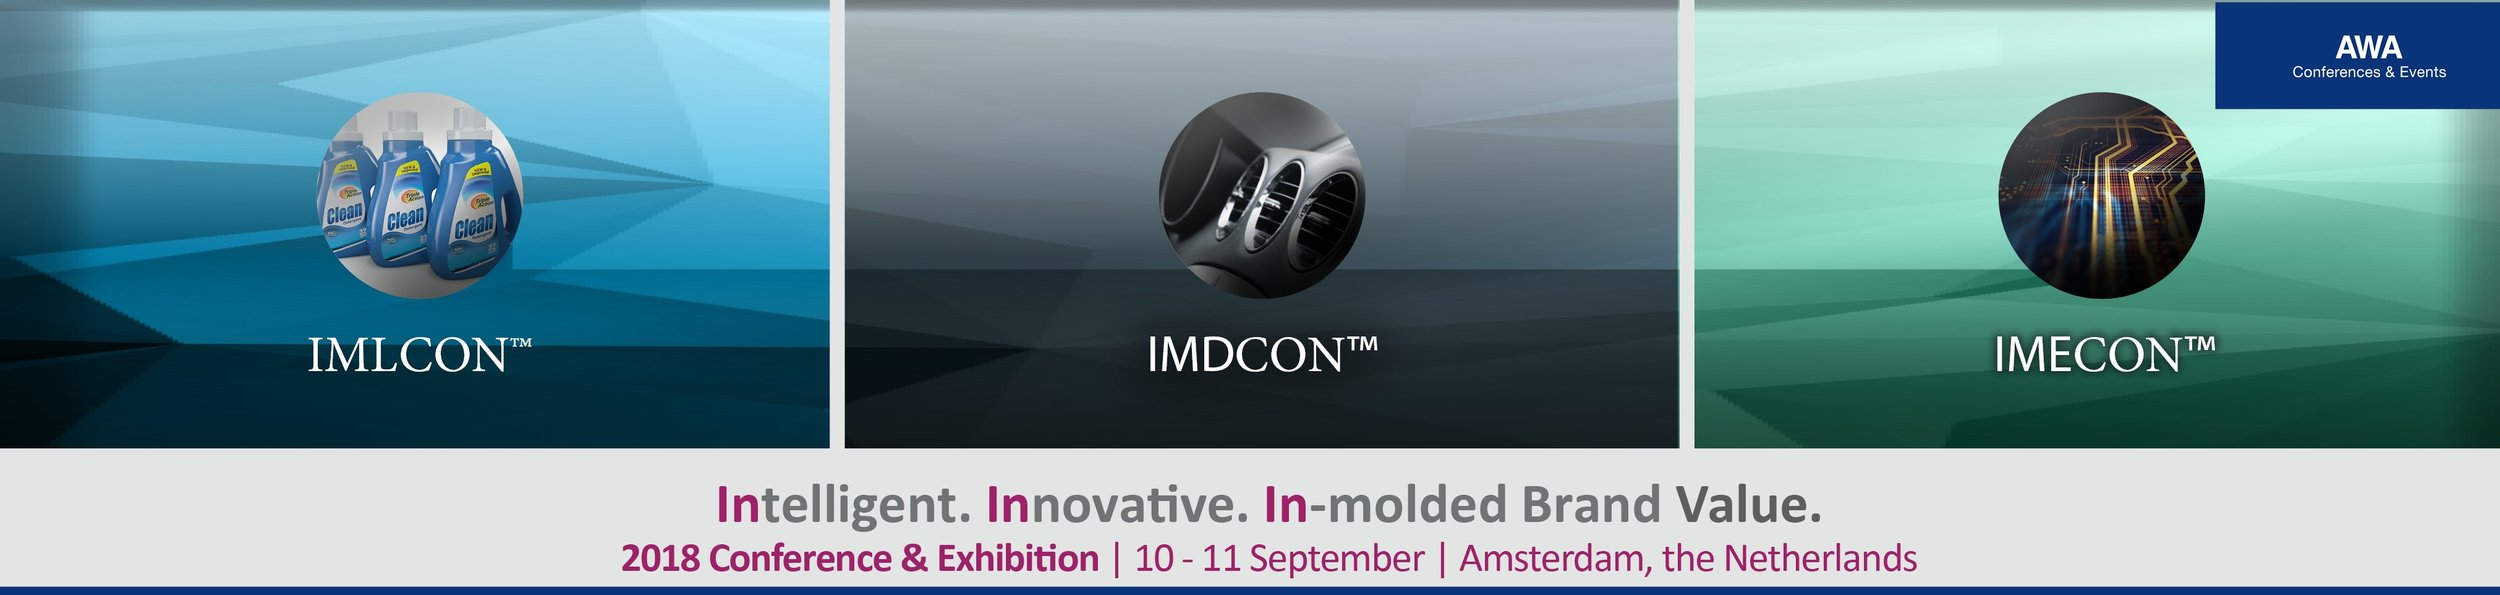 INMOLD Conference Banner (2).jpg